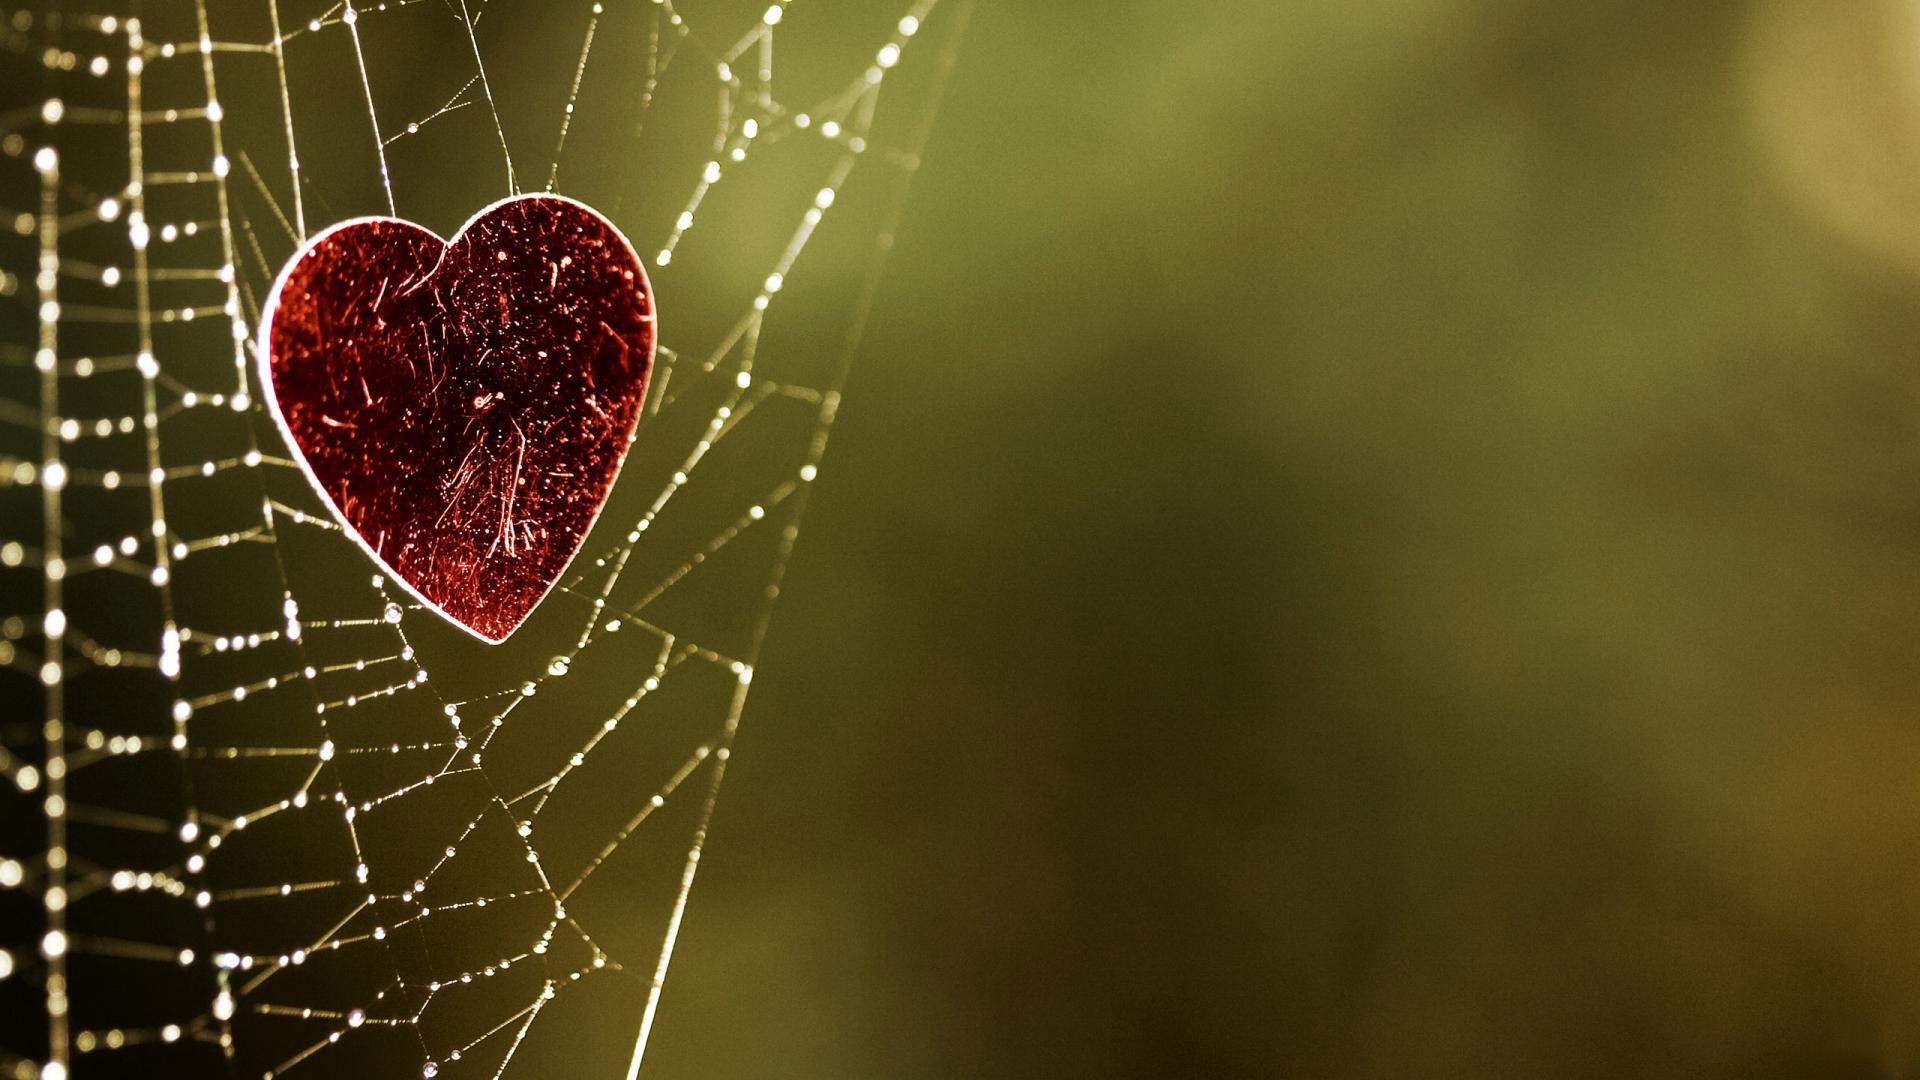 1920x1080 Heart Caught In A Spider Web HD Wallpaper